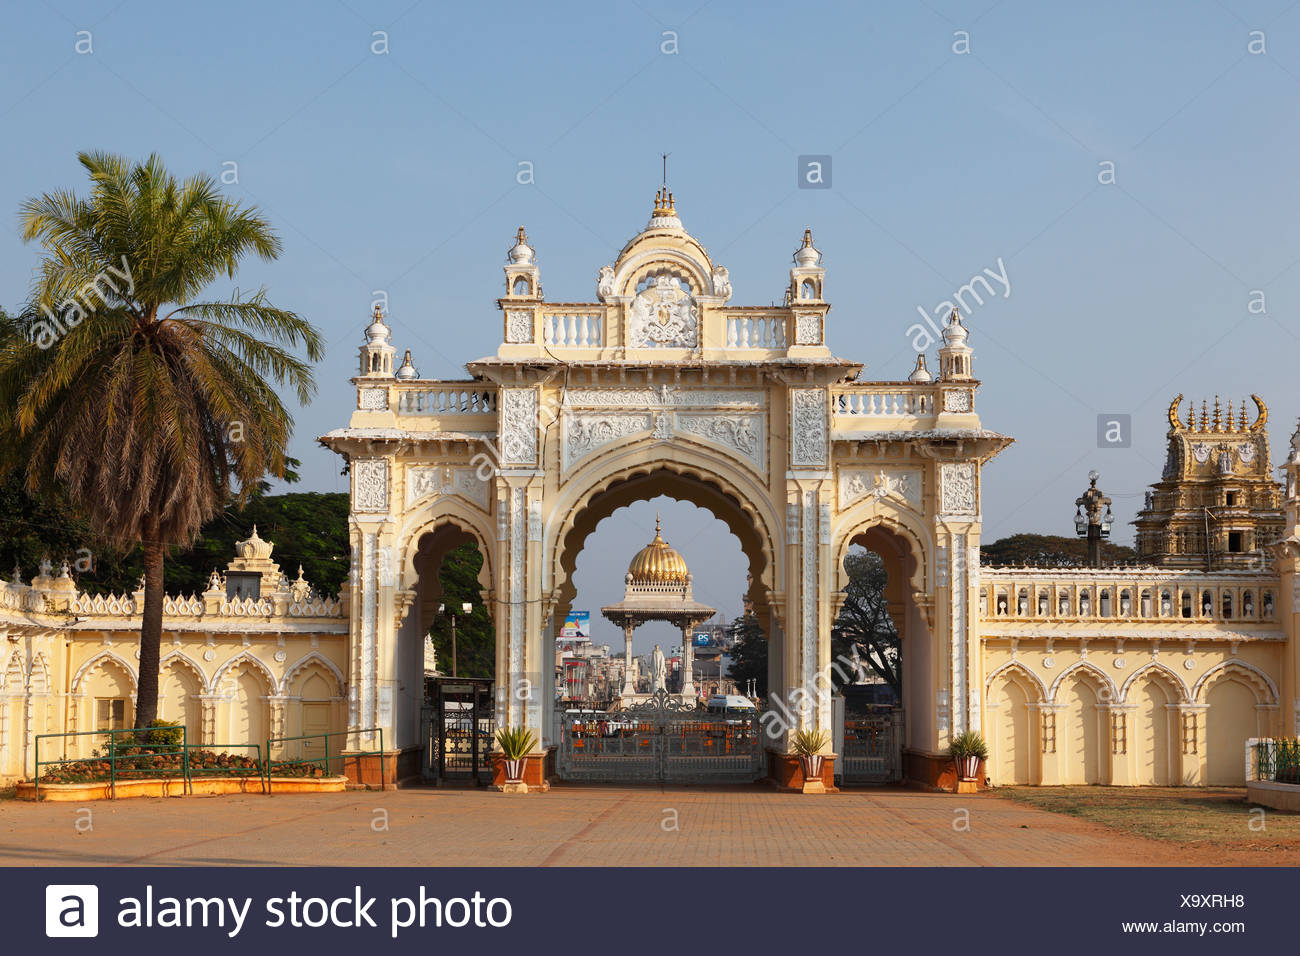 maharaja palace karnataka india stock photos maharaja palace karnataka india stock images alamy. Black Bedroom Furniture Sets. Home Design Ideas